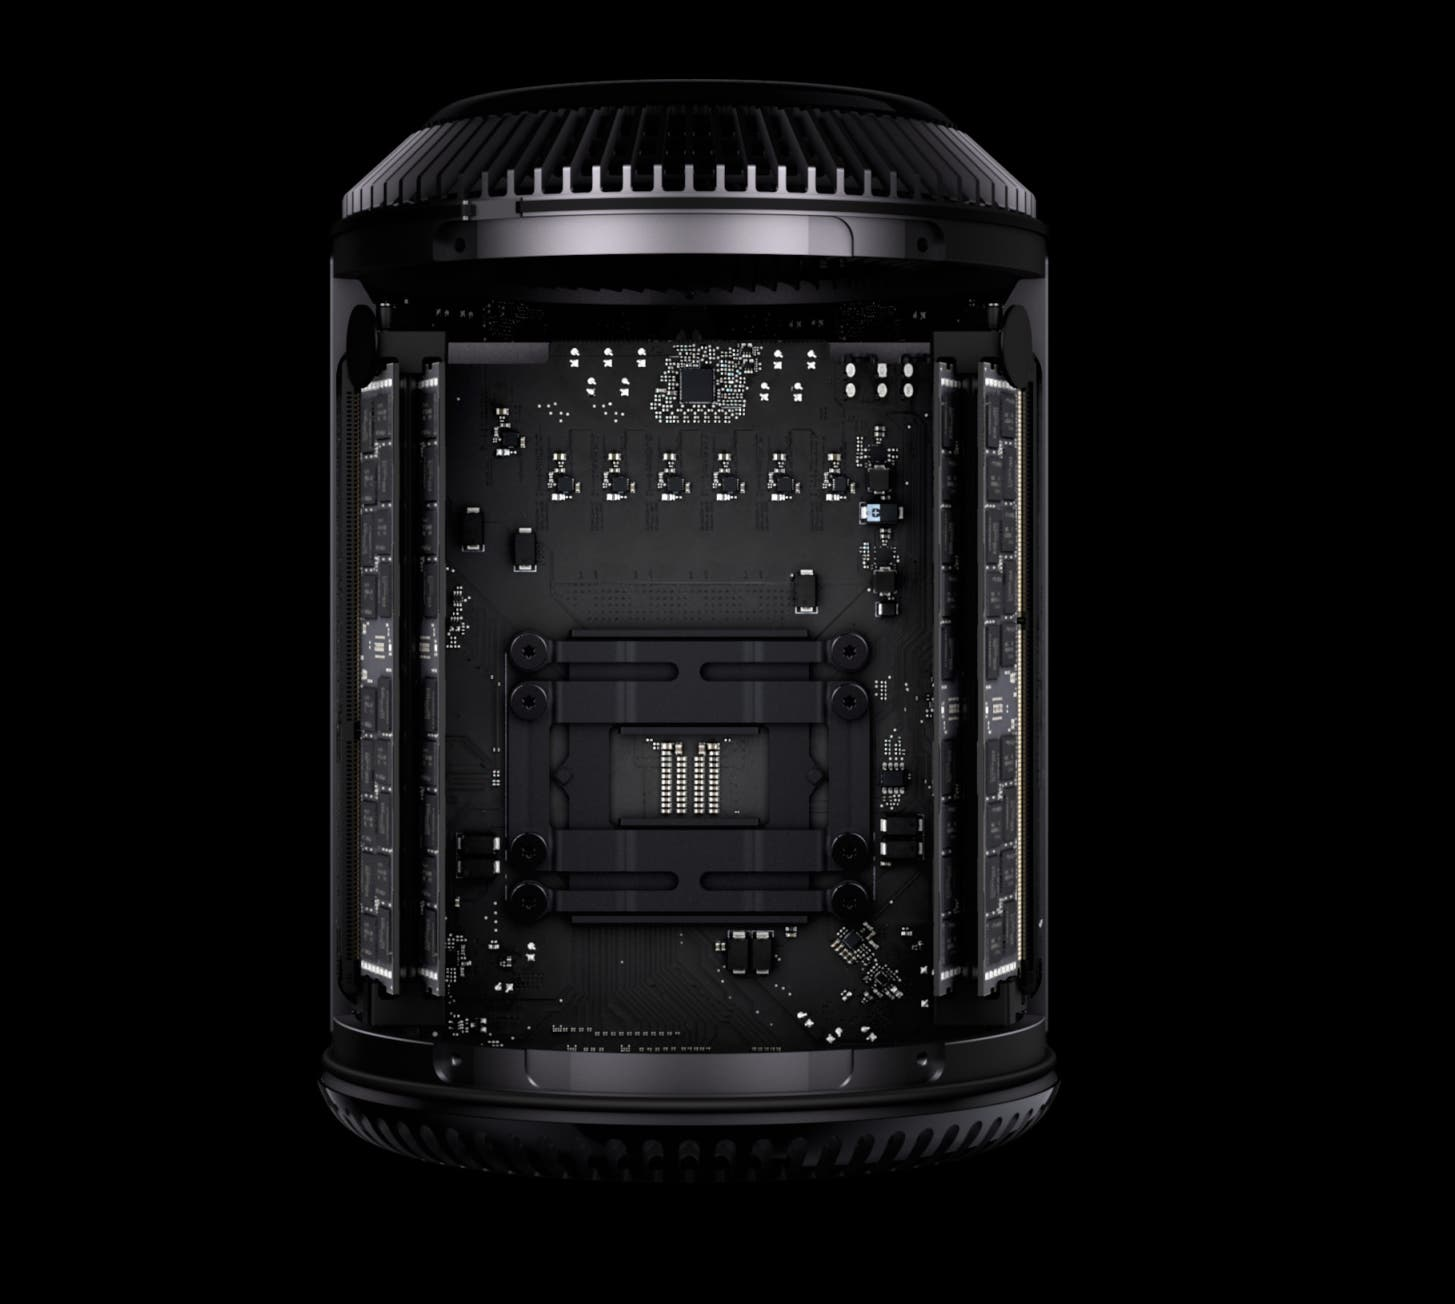 Apple Announces New Mac Pro and MacBook Air at WWDC 2013 - The Phoblographer